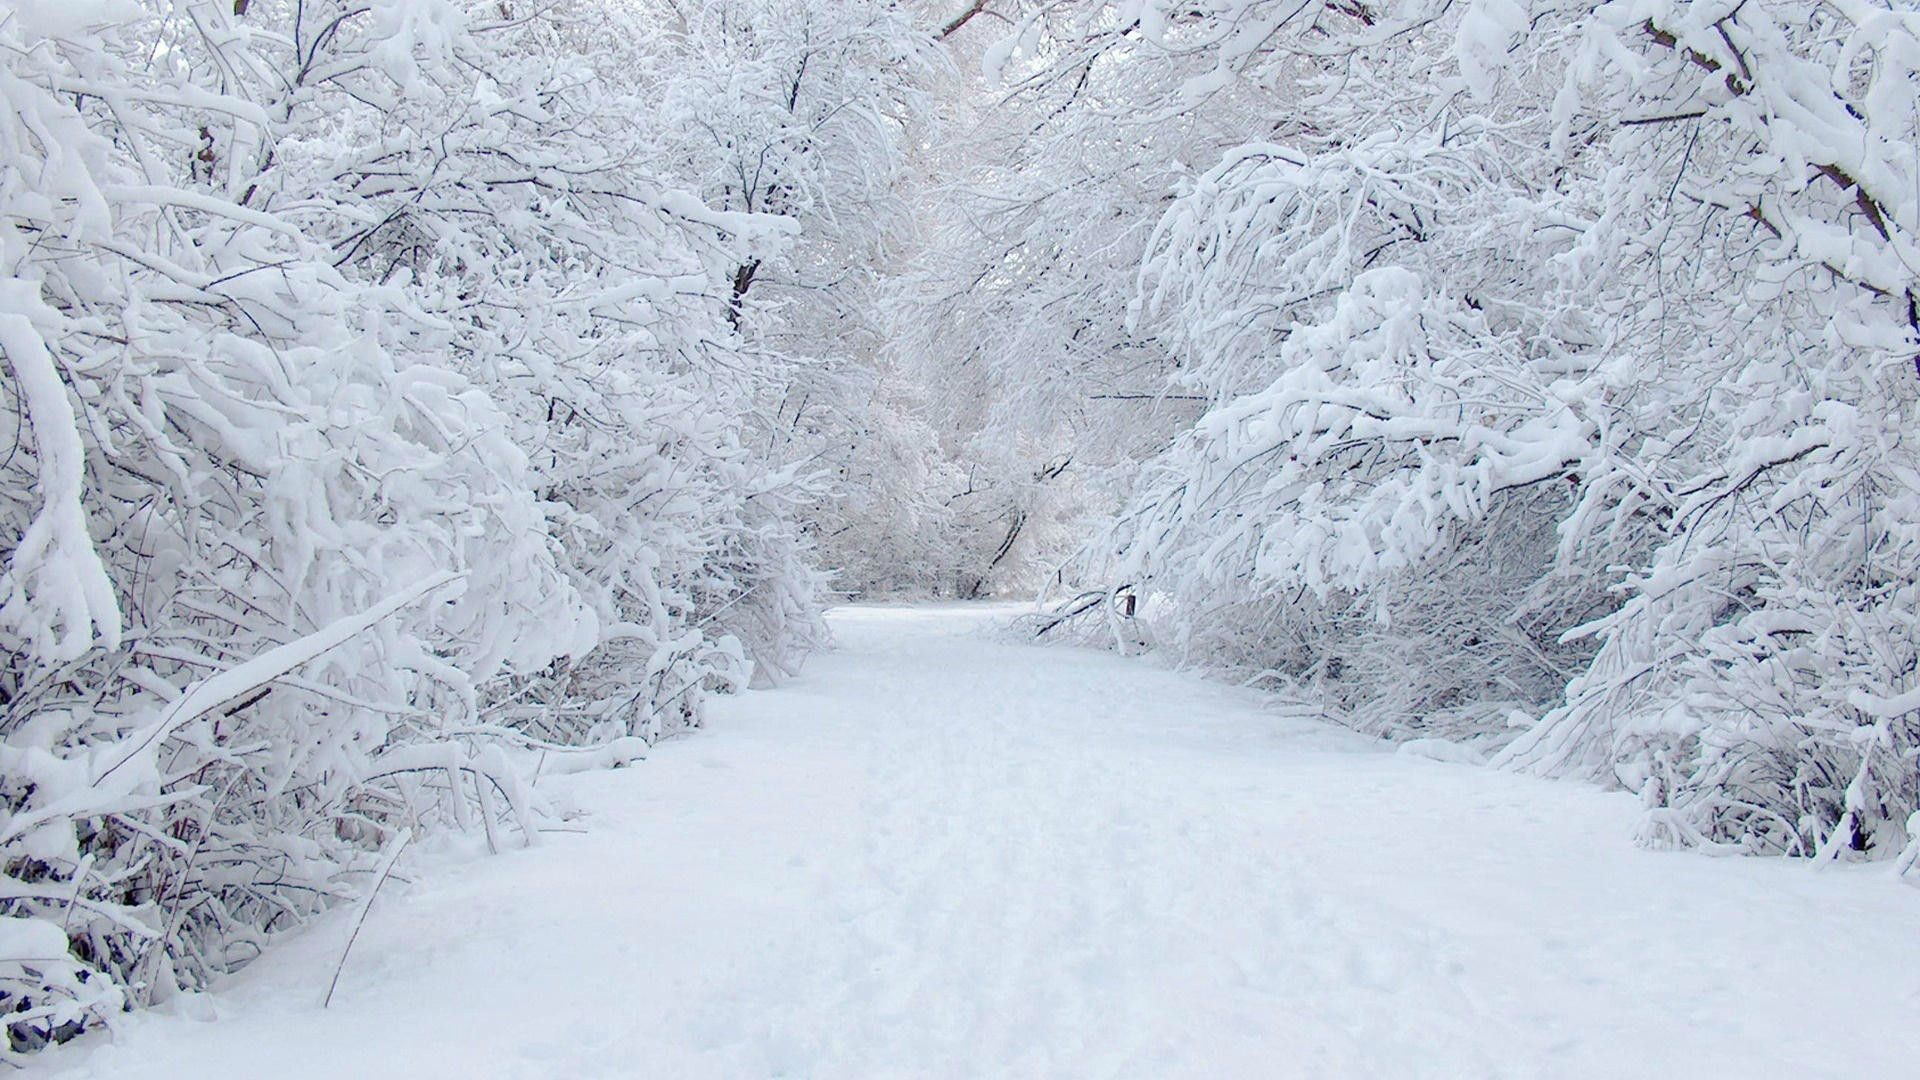 Winter Snow Wallpaper 1920×1200 Winter Snow Wallpapers (34 Wallpapers) |  Adorable Wallpapers